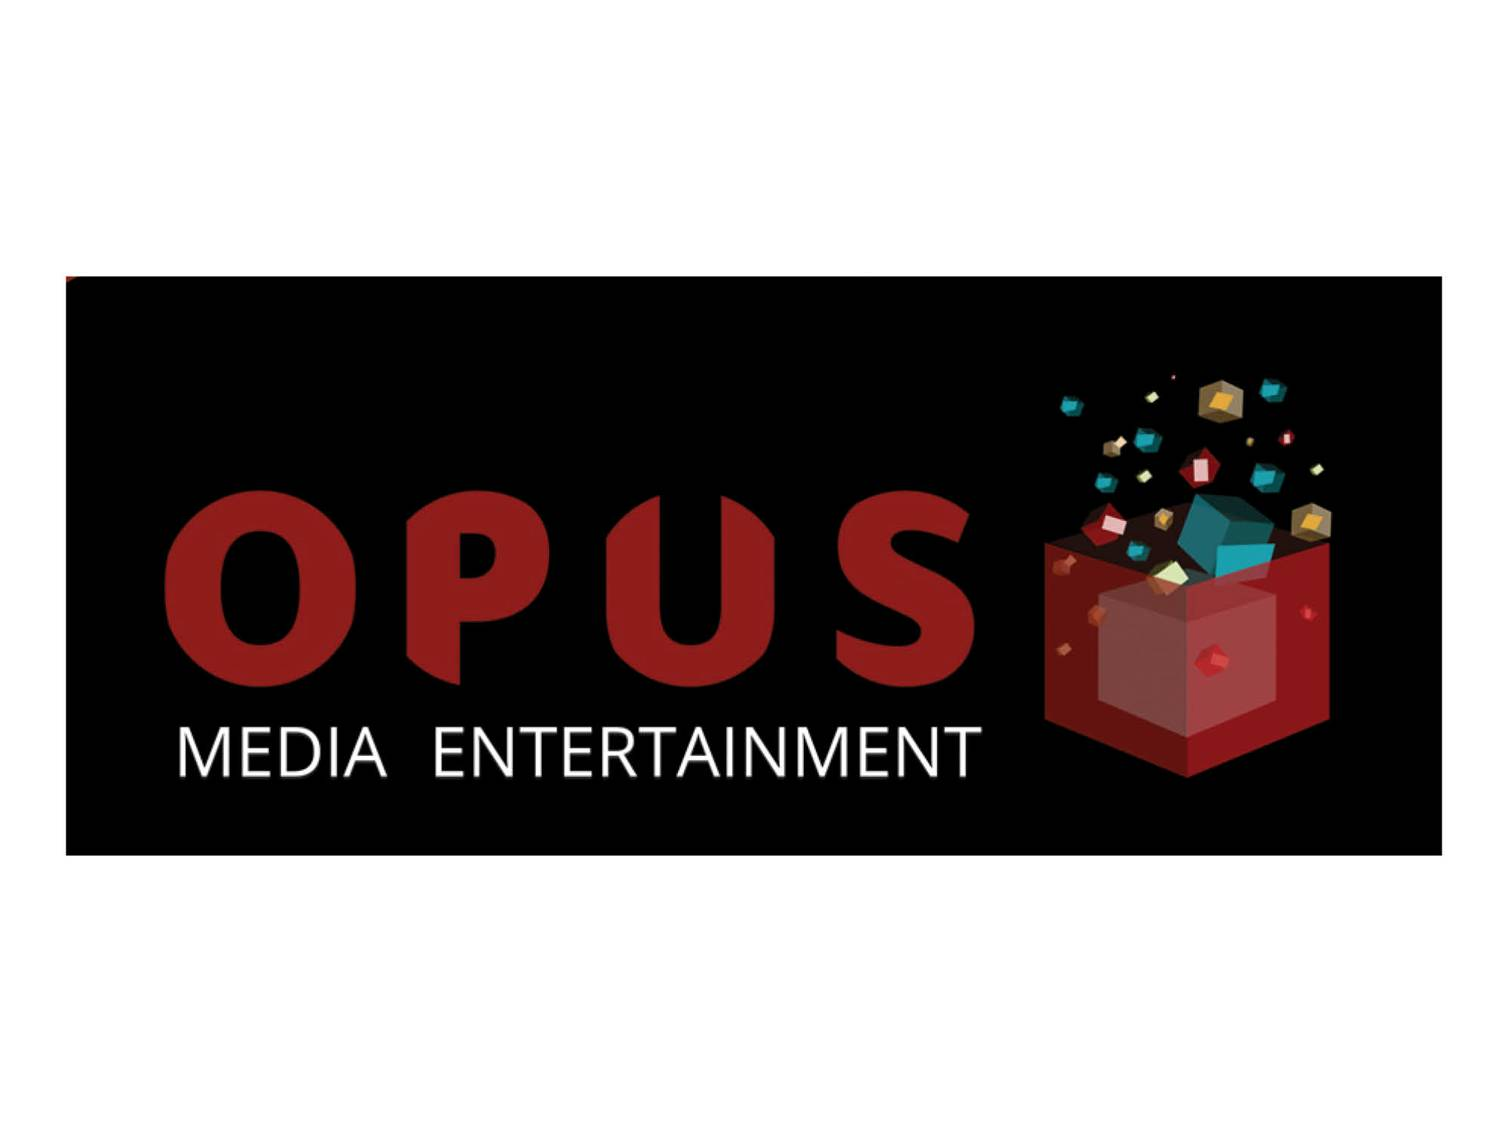 OPUS Media Entertaiment